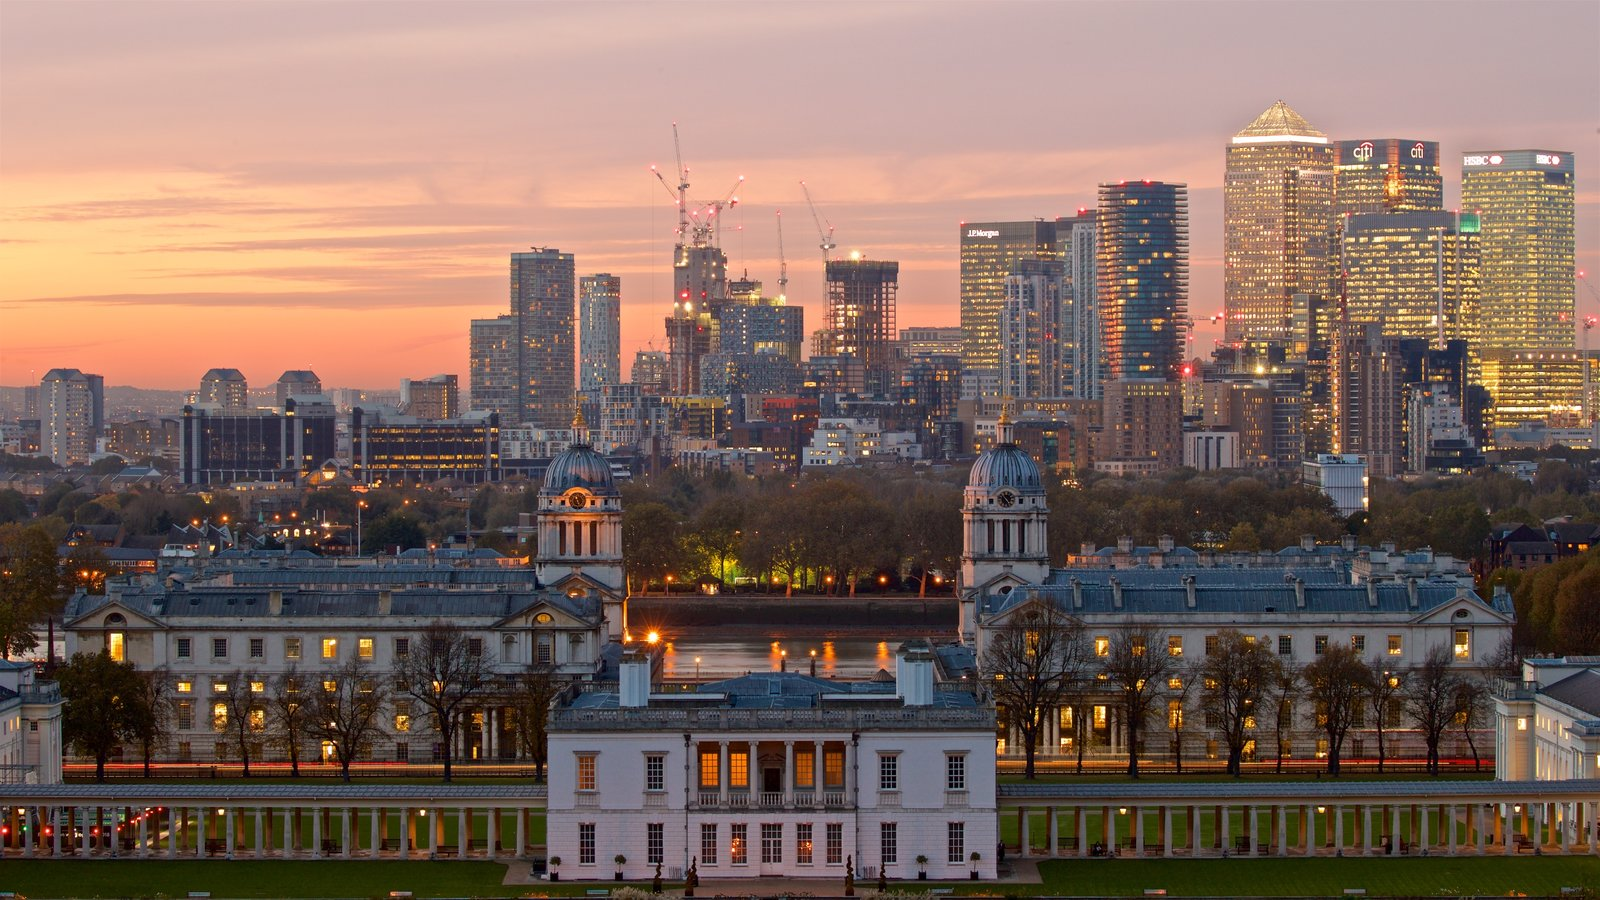 Greenwich Park showing a city, a sunset and landscape views